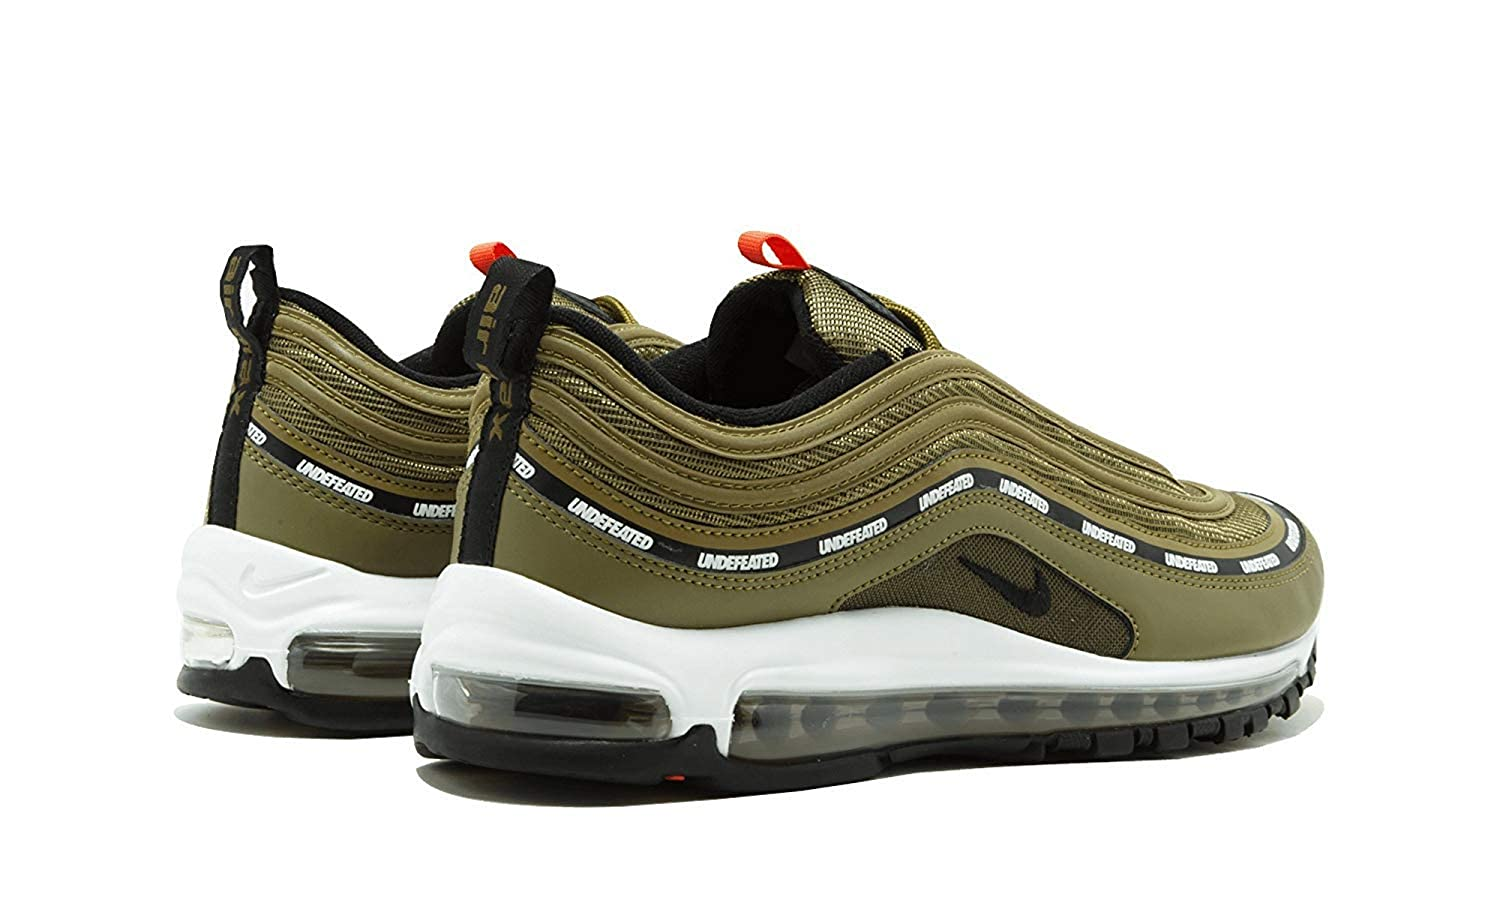 newest 87946 d3f59 Amazon.com   Nike Air Max 97 OG Undftd - US 9   Fashion Sneakers